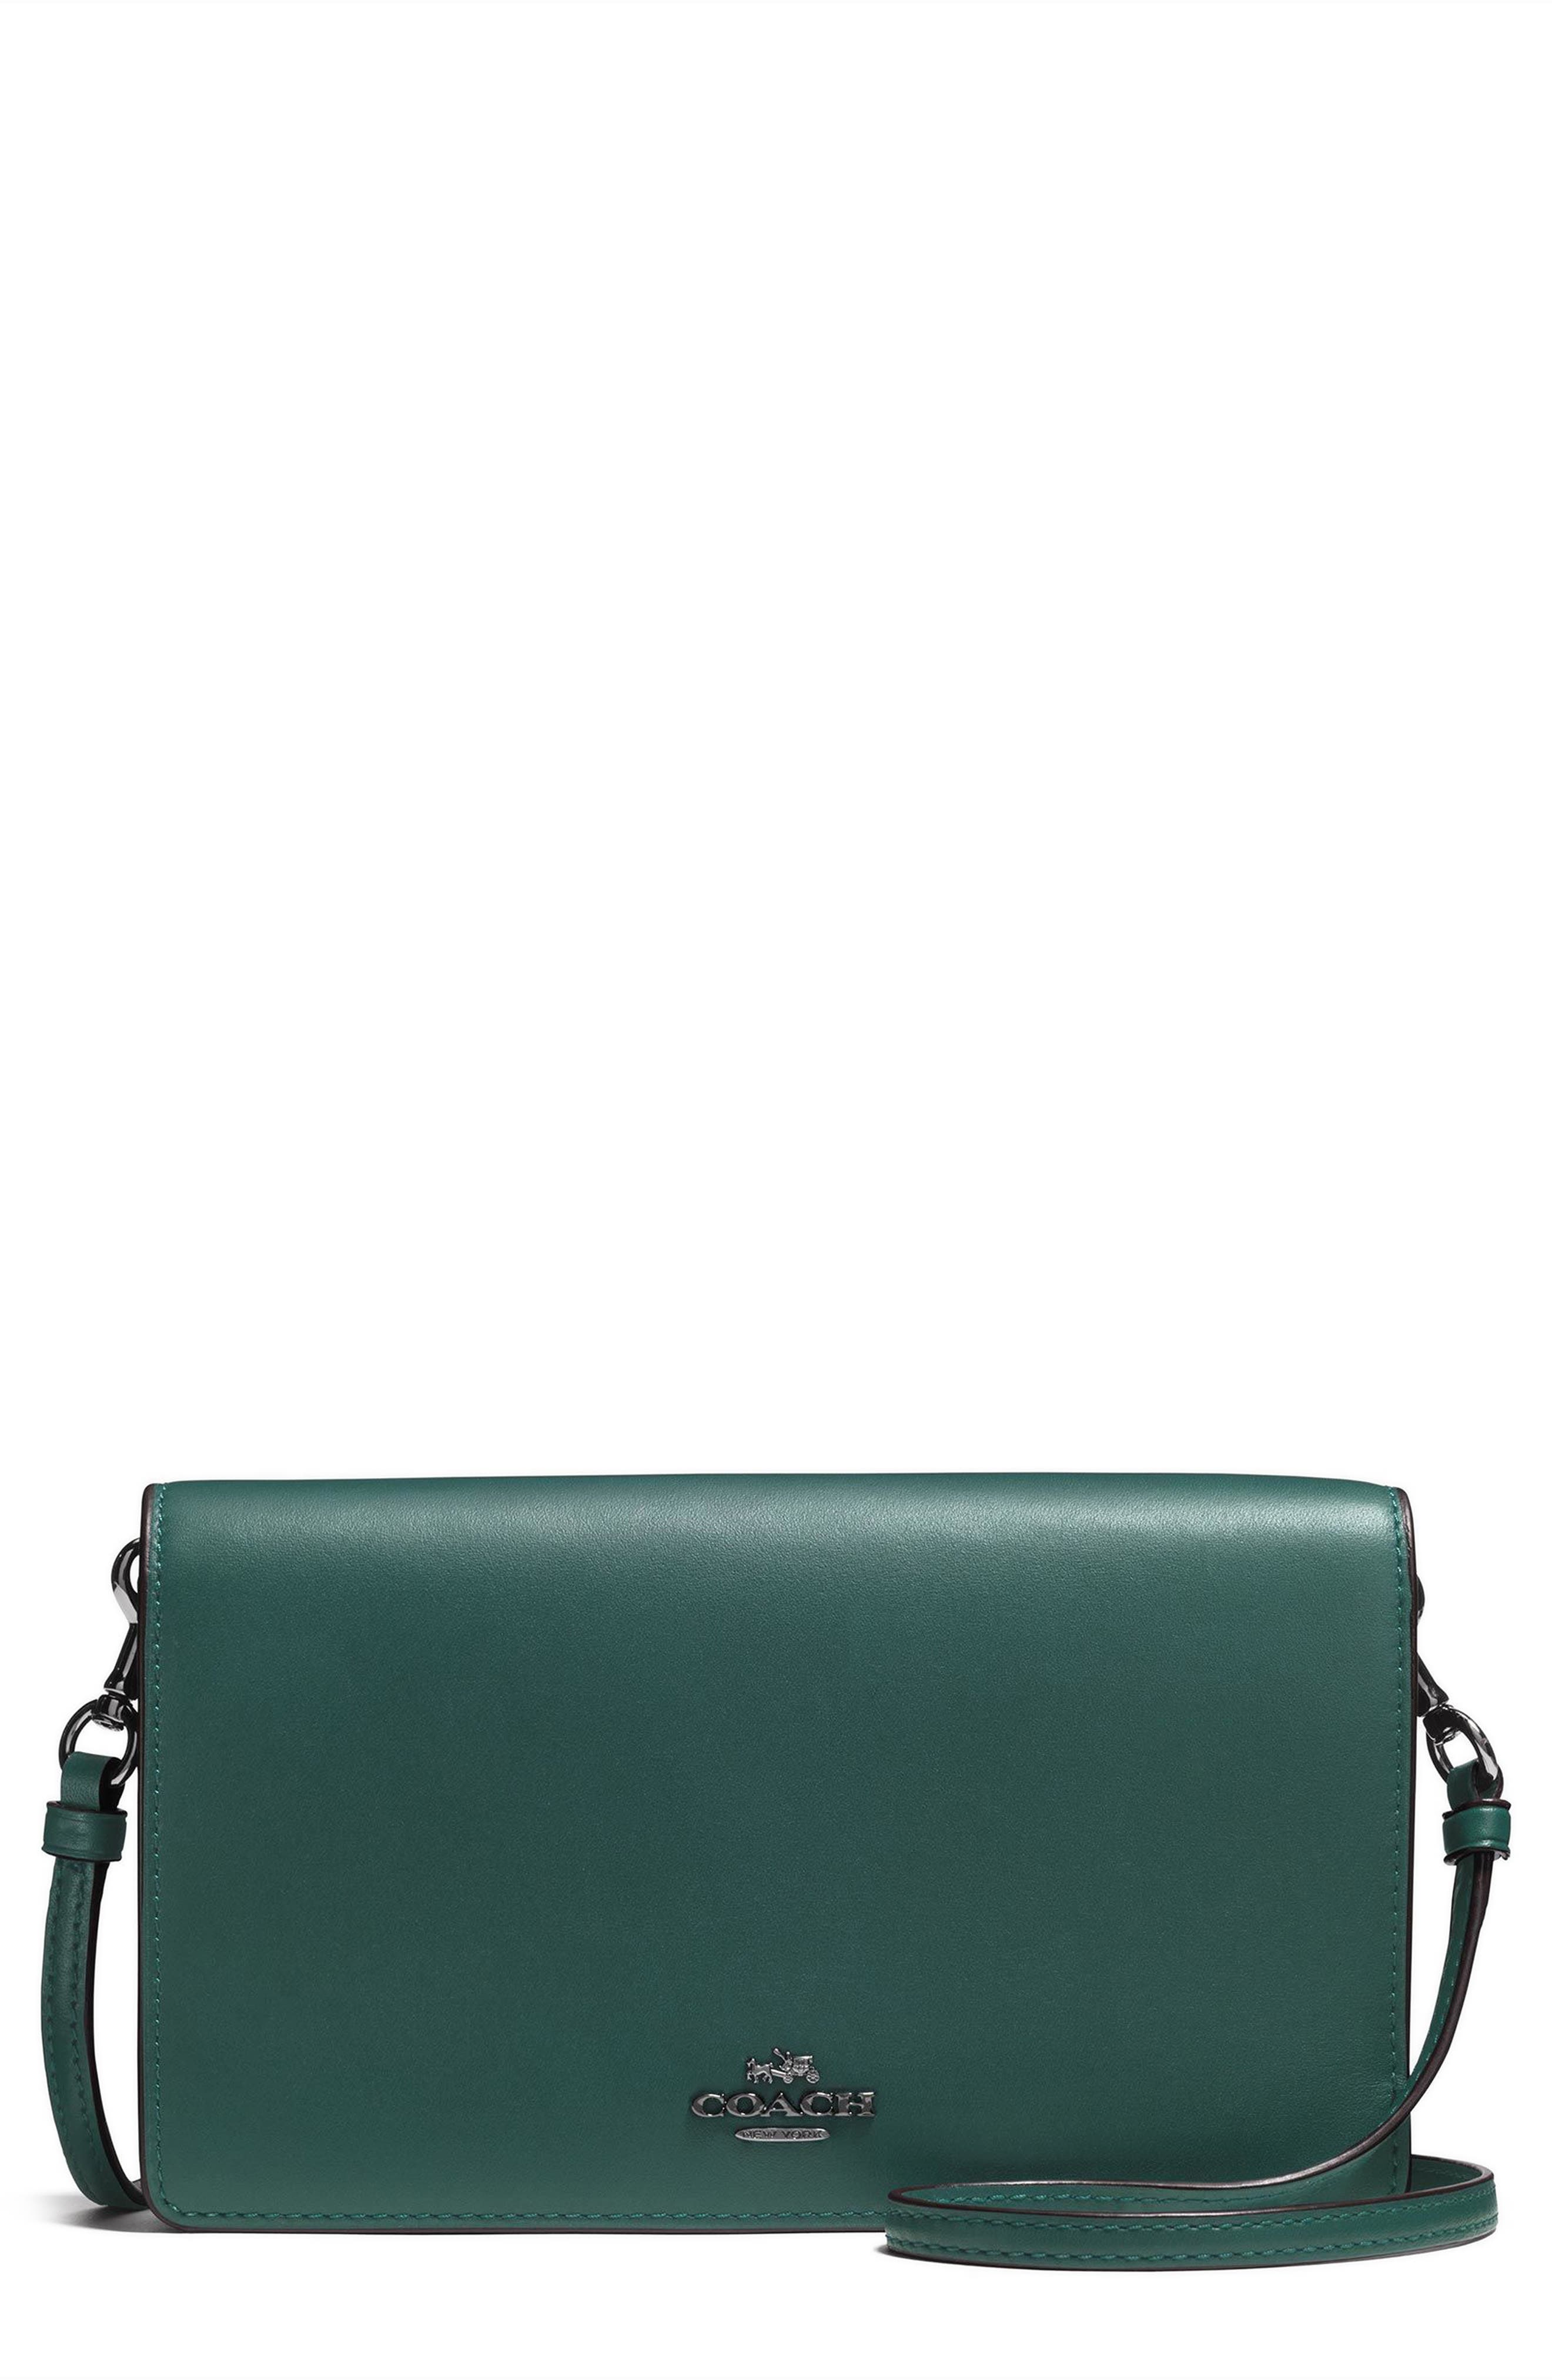 Calfskin Leather Foldover Convertible Clutch,                             Main thumbnail 1, color,                             Dark Turquoise